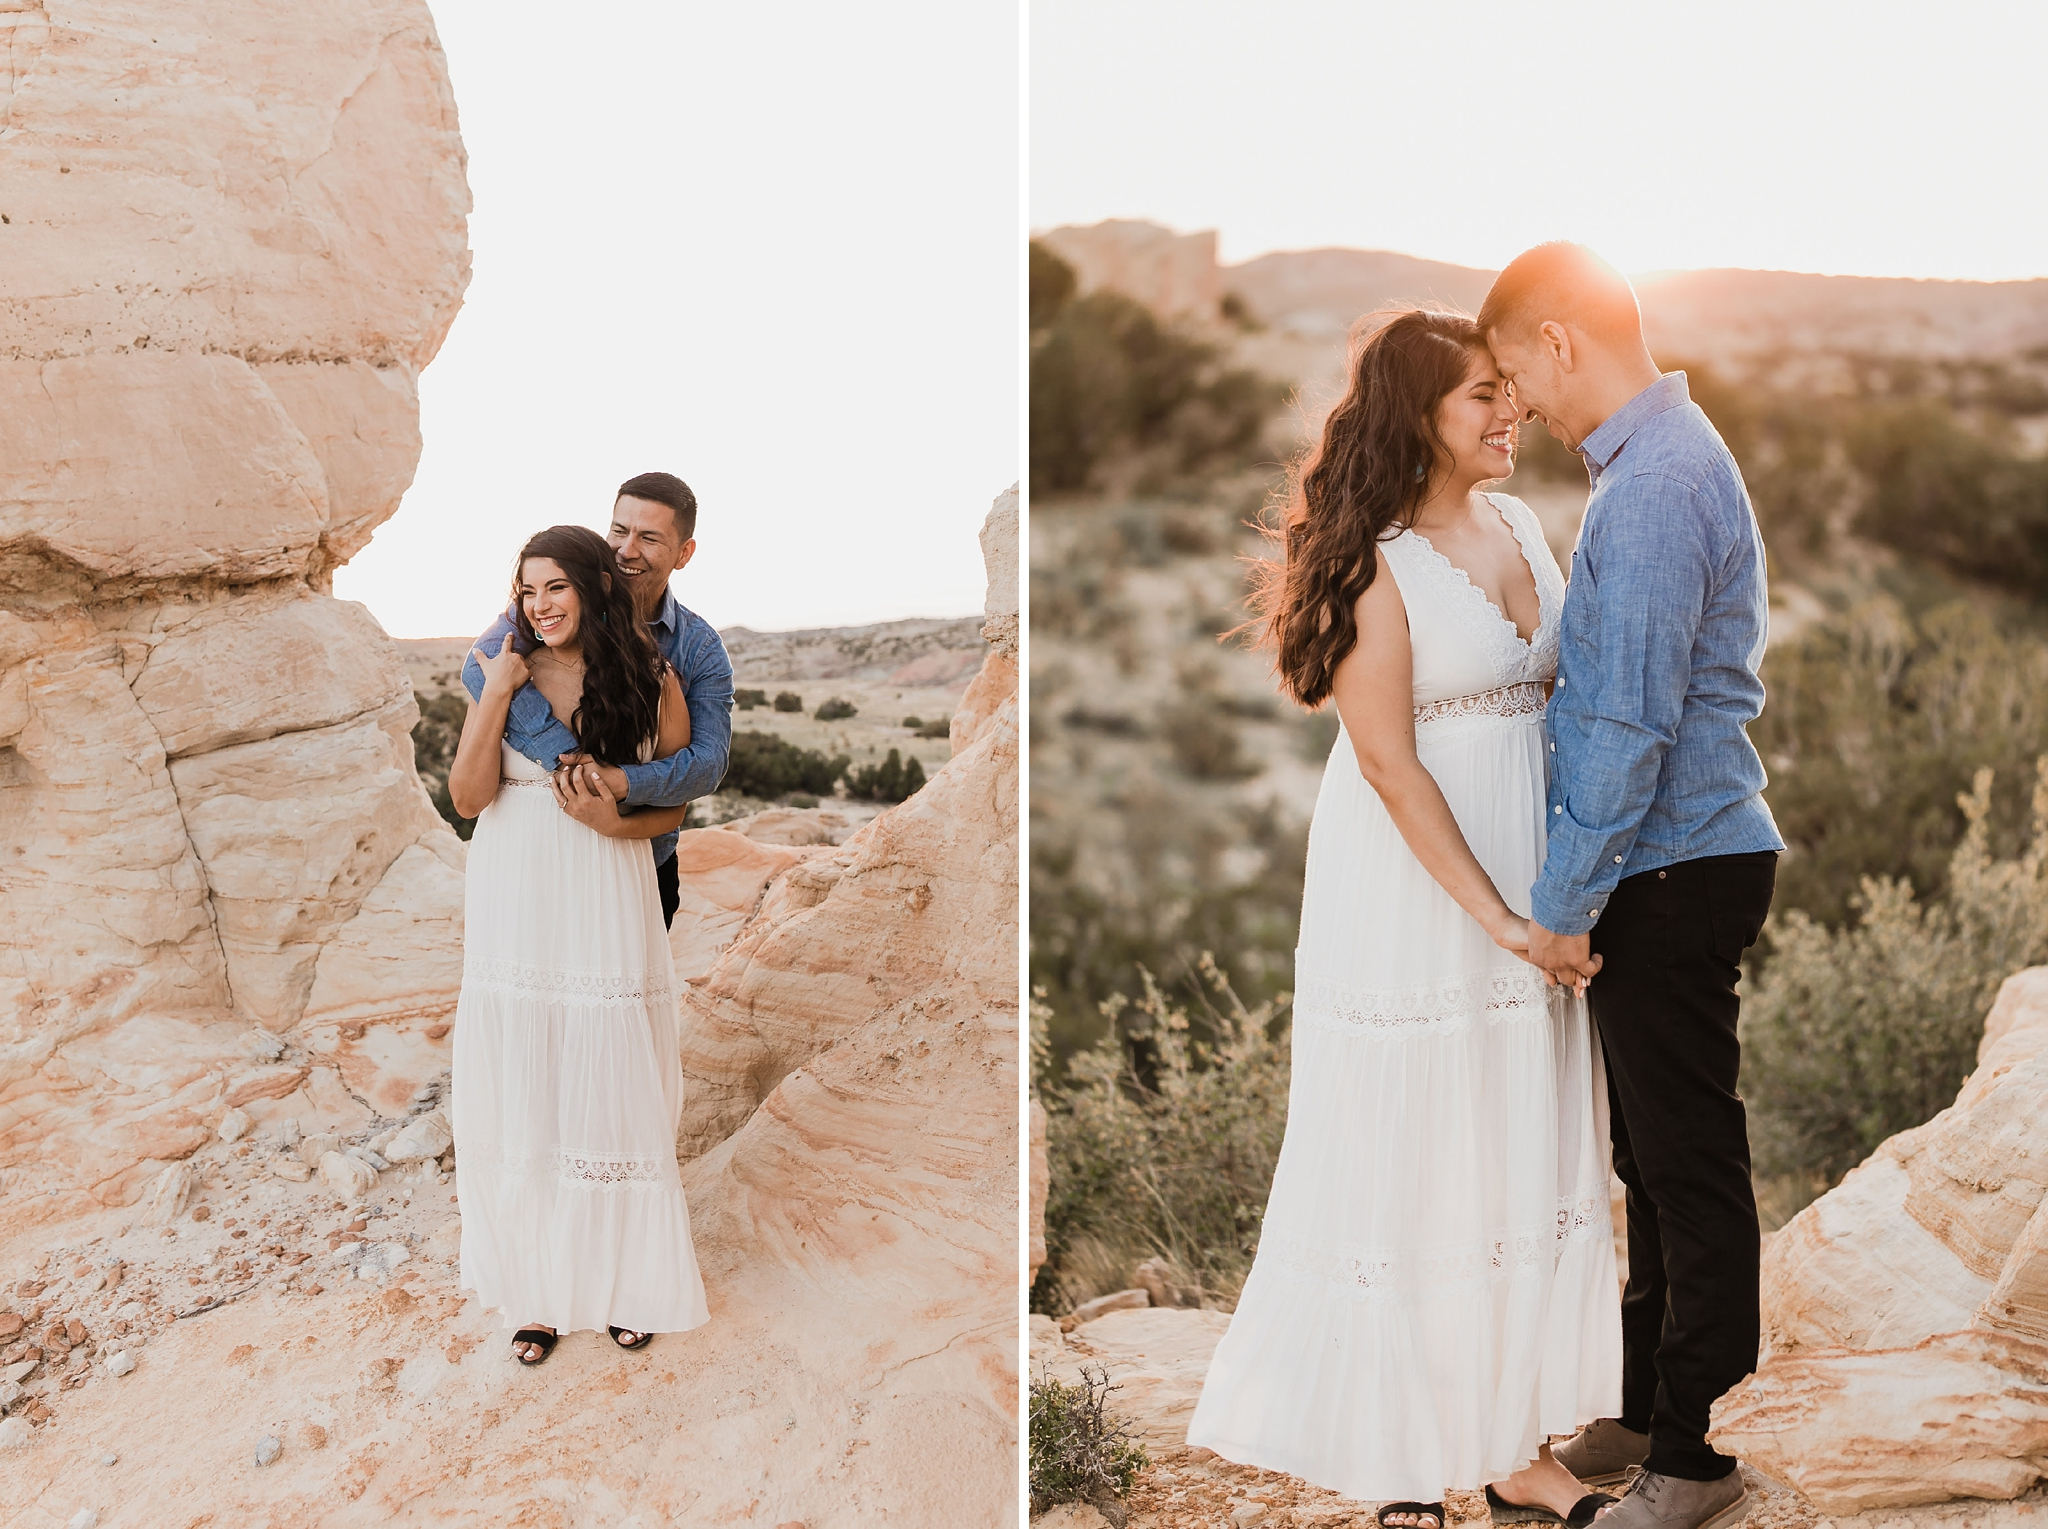 Alicia+lucia+photography+-+albuquerque+wedding+photographer+-+santa+fe+wedding+photography+-+new+mexico+wedding+photographer+-+new+mexico+wedding+-+new+mexico+engagement+-+engagement+style+-+style+lookbook_0009.jpg